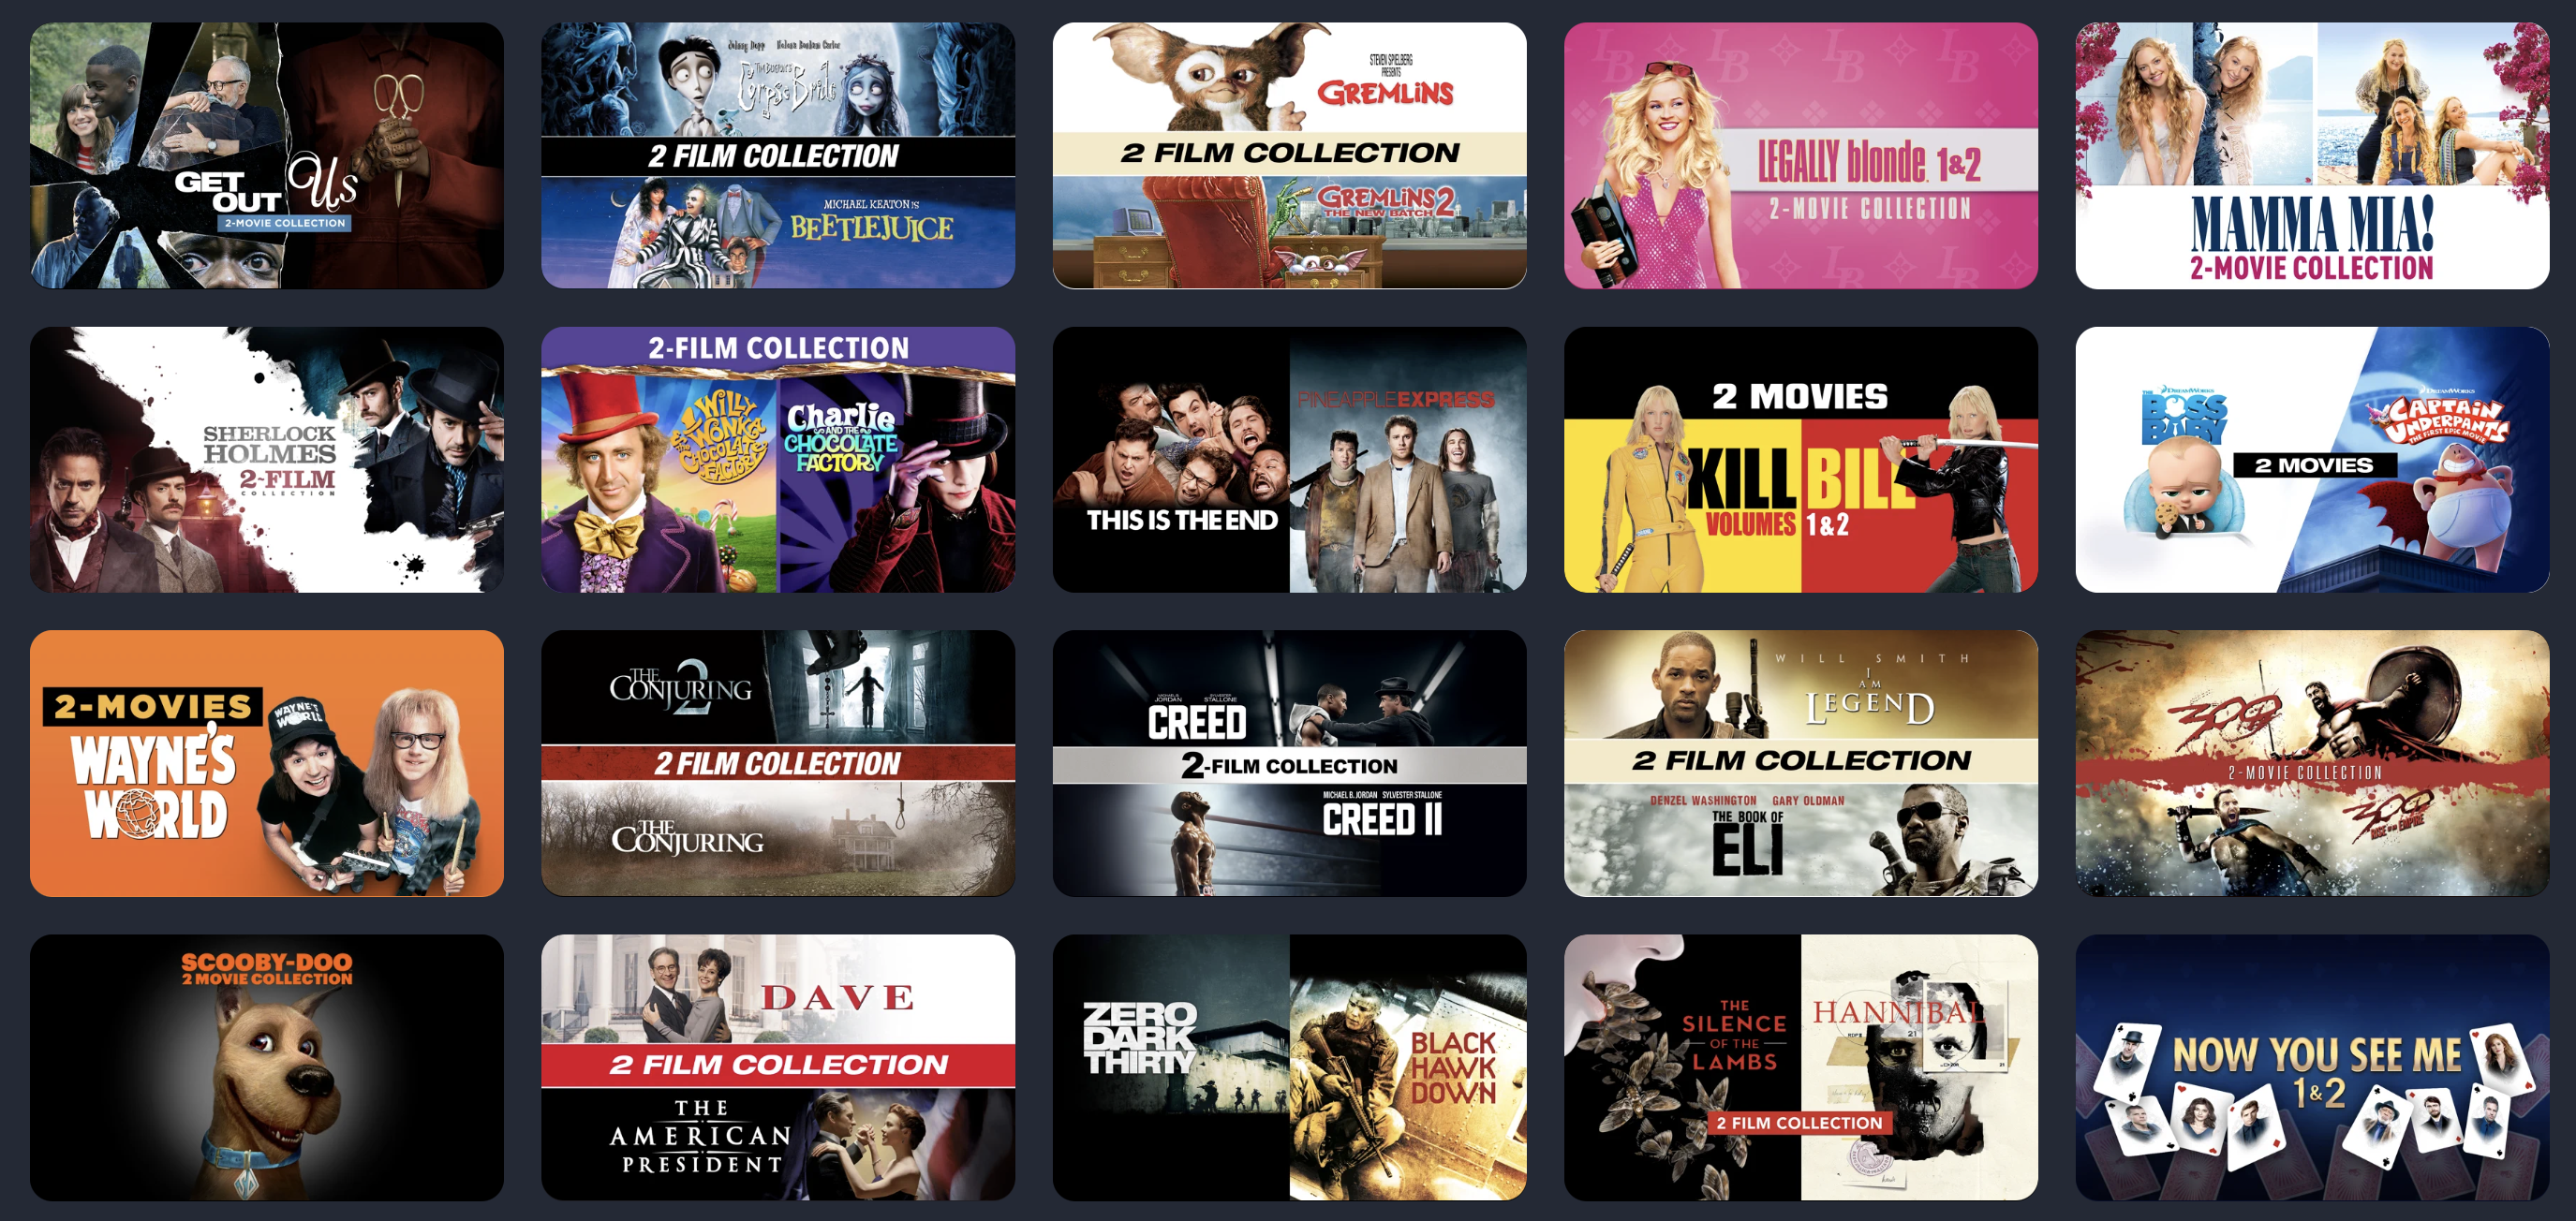 iTunes movie deals: 4K movies $5, Kill Bill double feature $10, Fast & Furious collection $30, and more